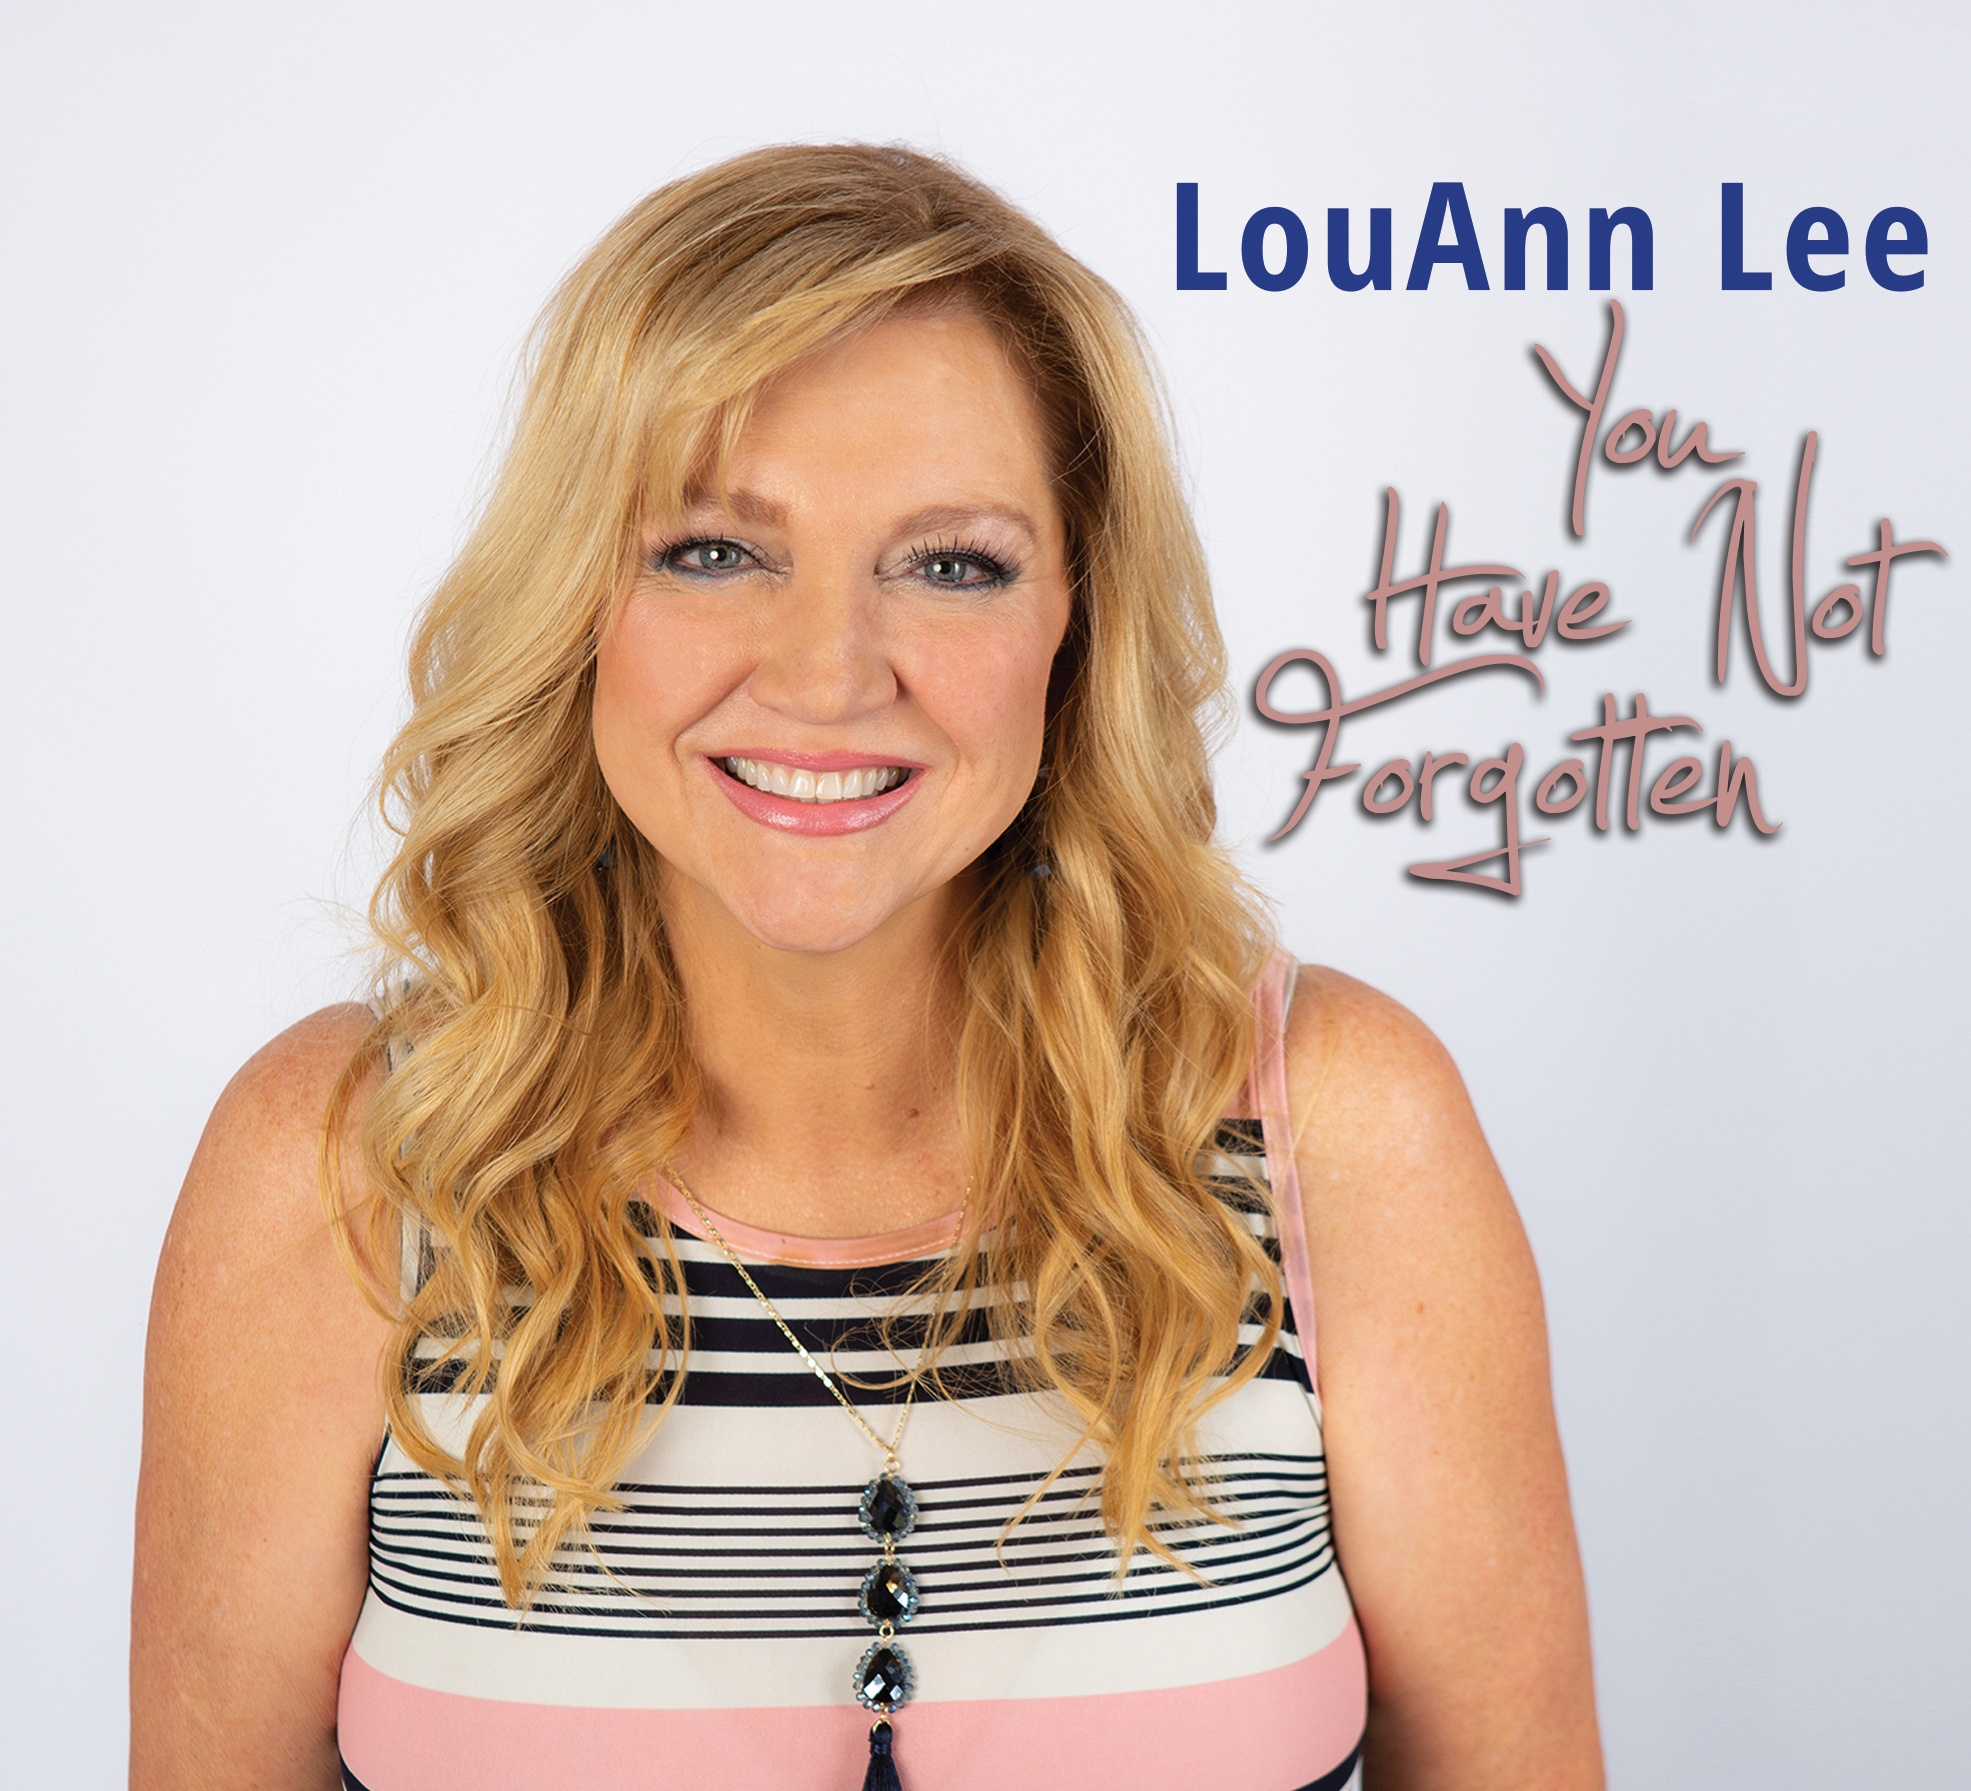 AWARD-WINNING SINGER LOUANN LEE RELEASES NEW SINGLE TO RADIO TODAY